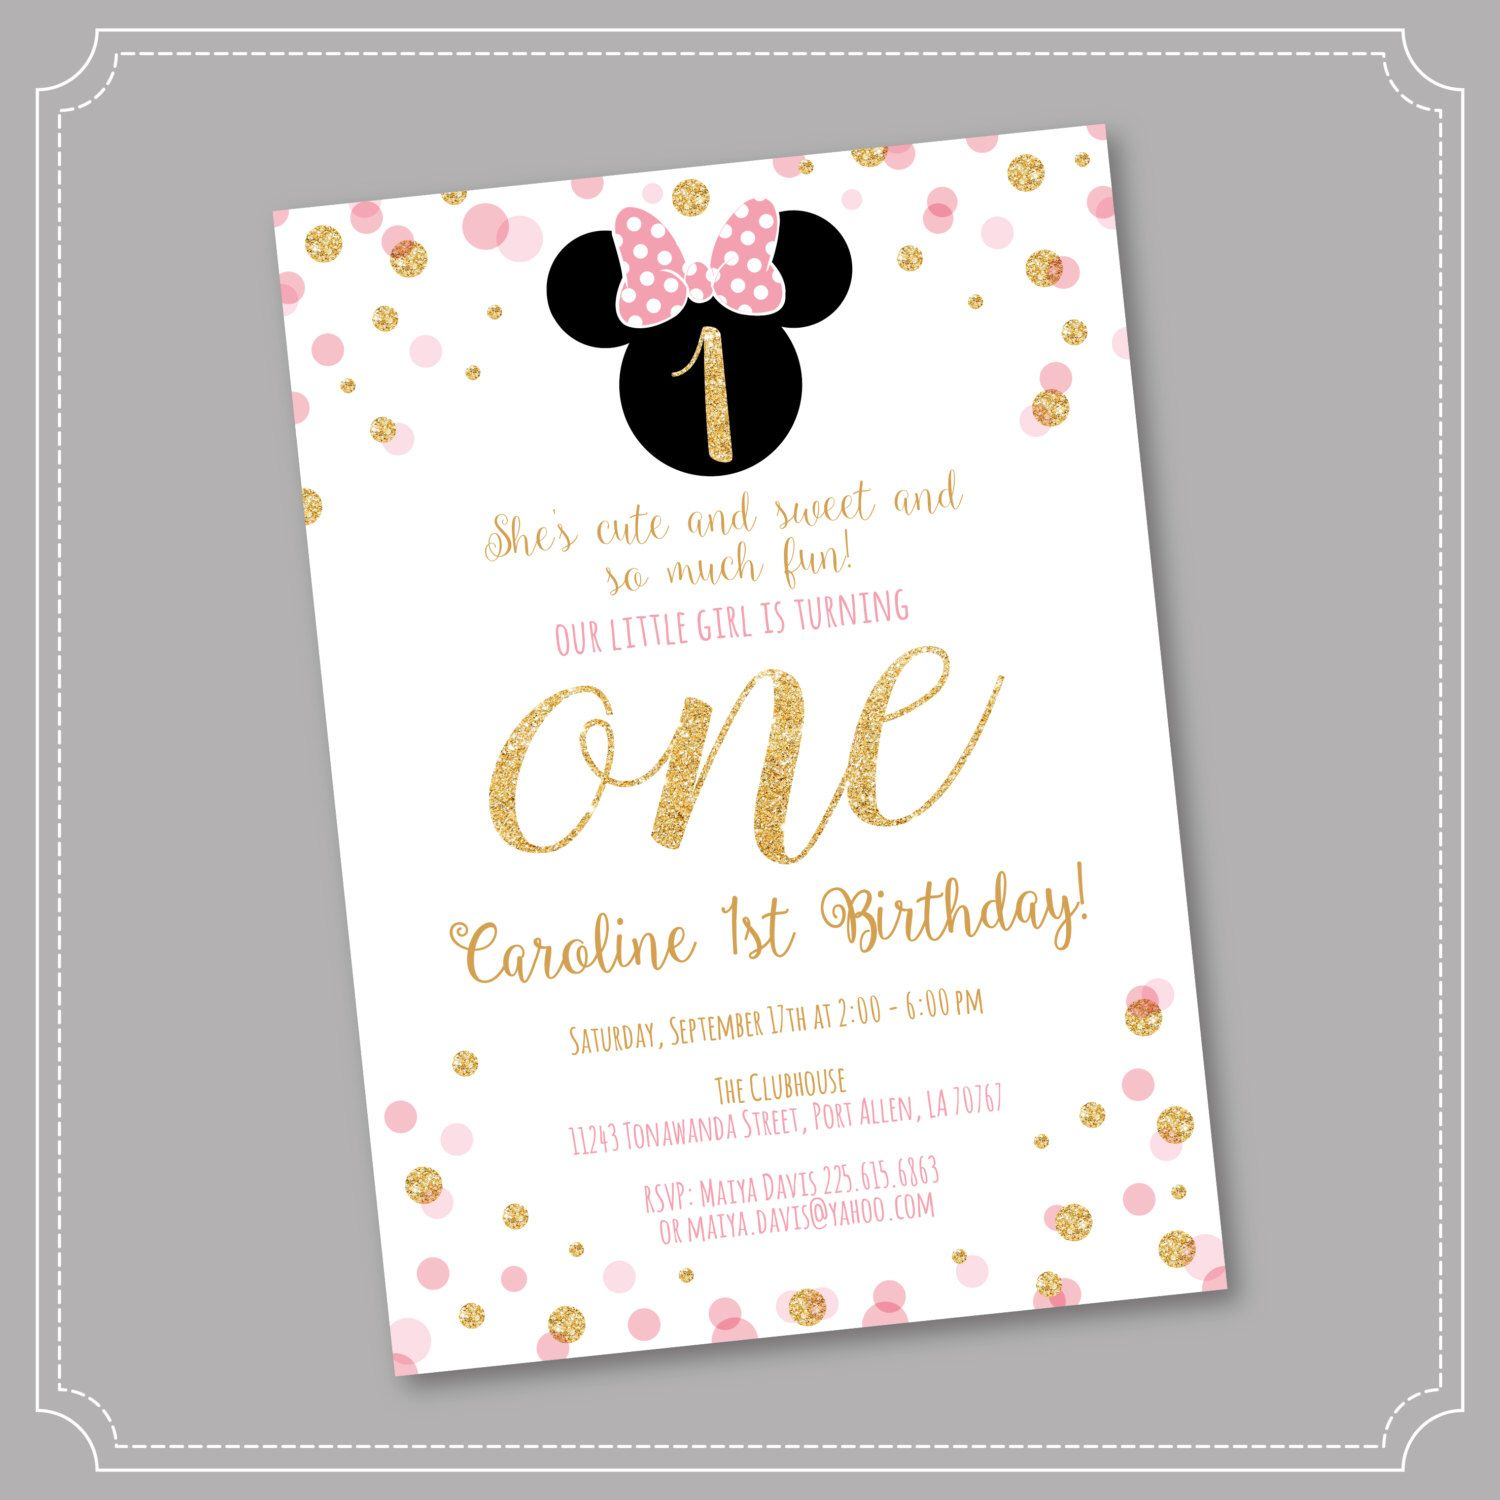 OFF Pink and Gold Minnie Mouse Birthday Party Invitation